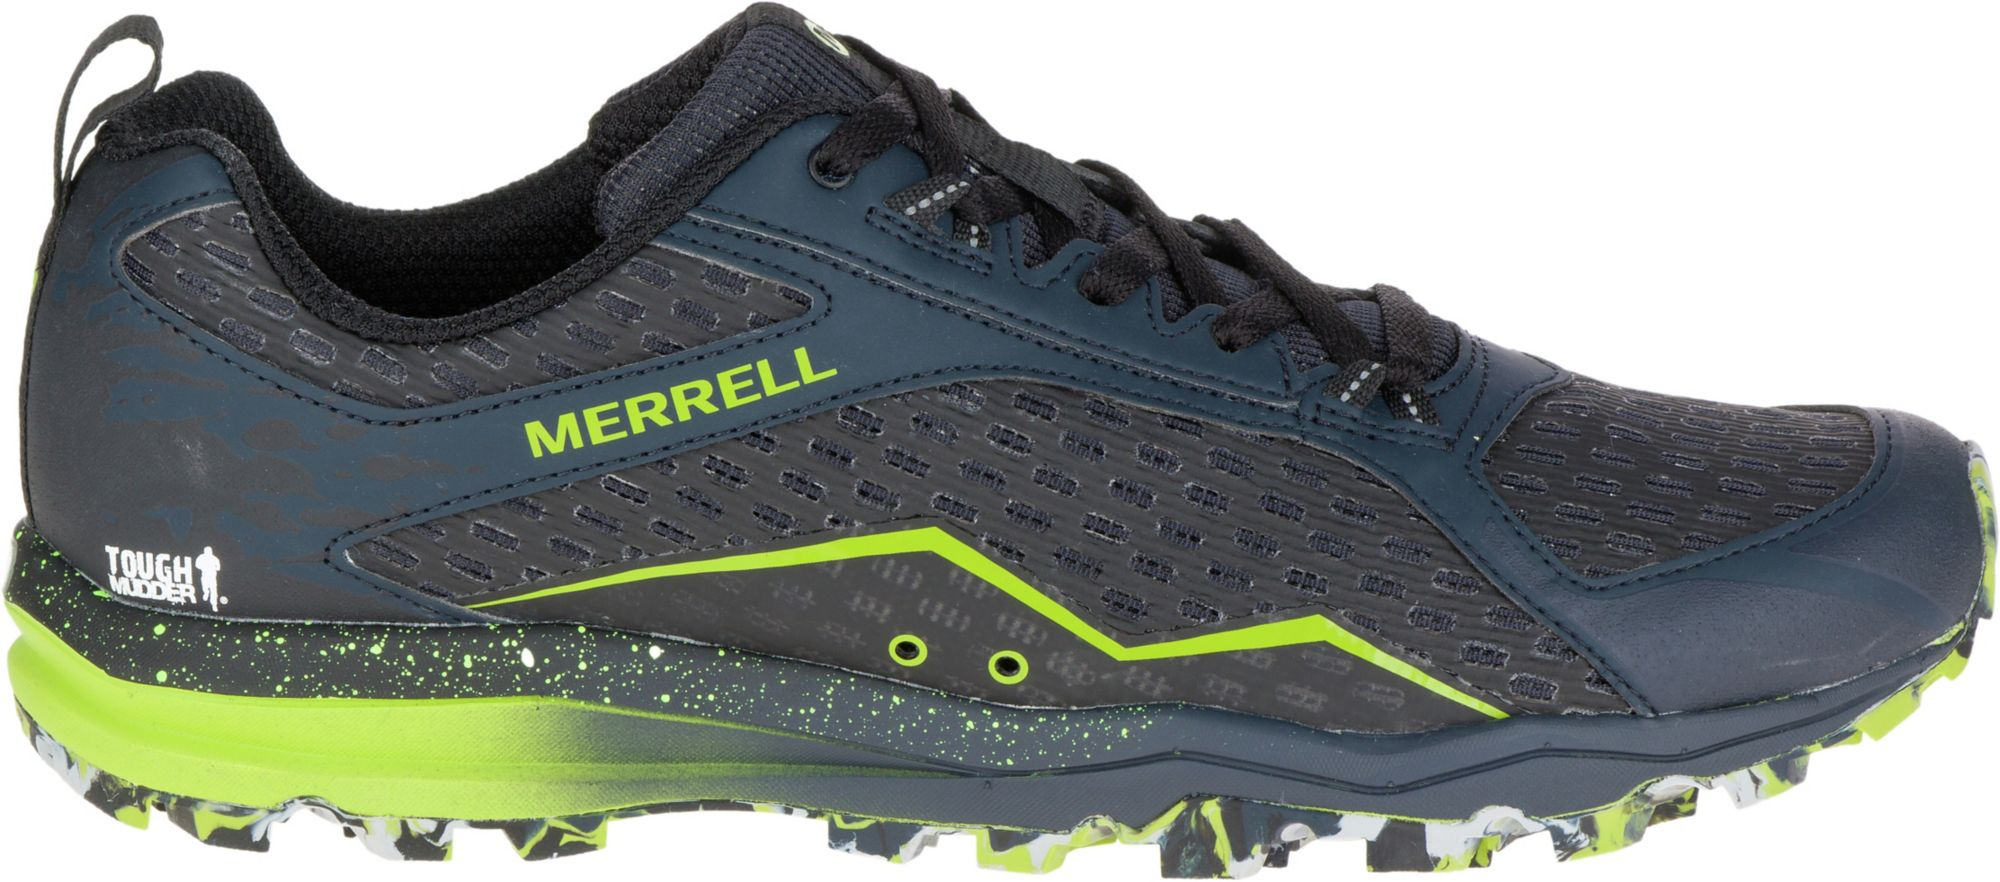 noImageFound Merrell Menu0027s All Out Crush